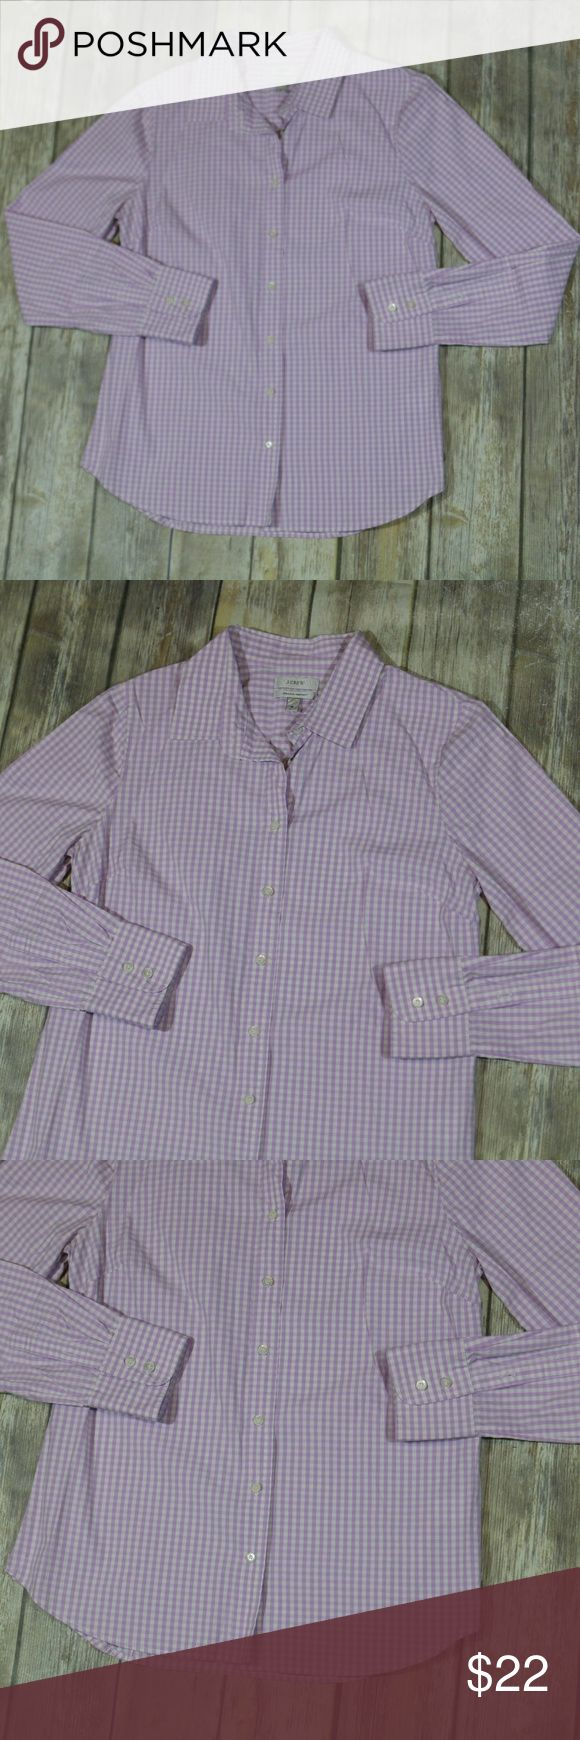 "J. Crew Stretch Perfect Shirt Gingham 93260 J. Crew Women's Stretch Perfect Shirt in Medium Gingham. Medium. Purple & white. Style 93260. 97% Cotton, 3% Spandex. Machine wash.  Button down. Super cute for casual or career wear. In good, preowned condition with no flaws noted. Measures approximately 18"" pit to pit, 25"" shoulder to hem. No trades  From online:  Borrowed from the boys but designed and tailored impeccably for us—that's why we call it perfect—with precisely placed bust and back…"